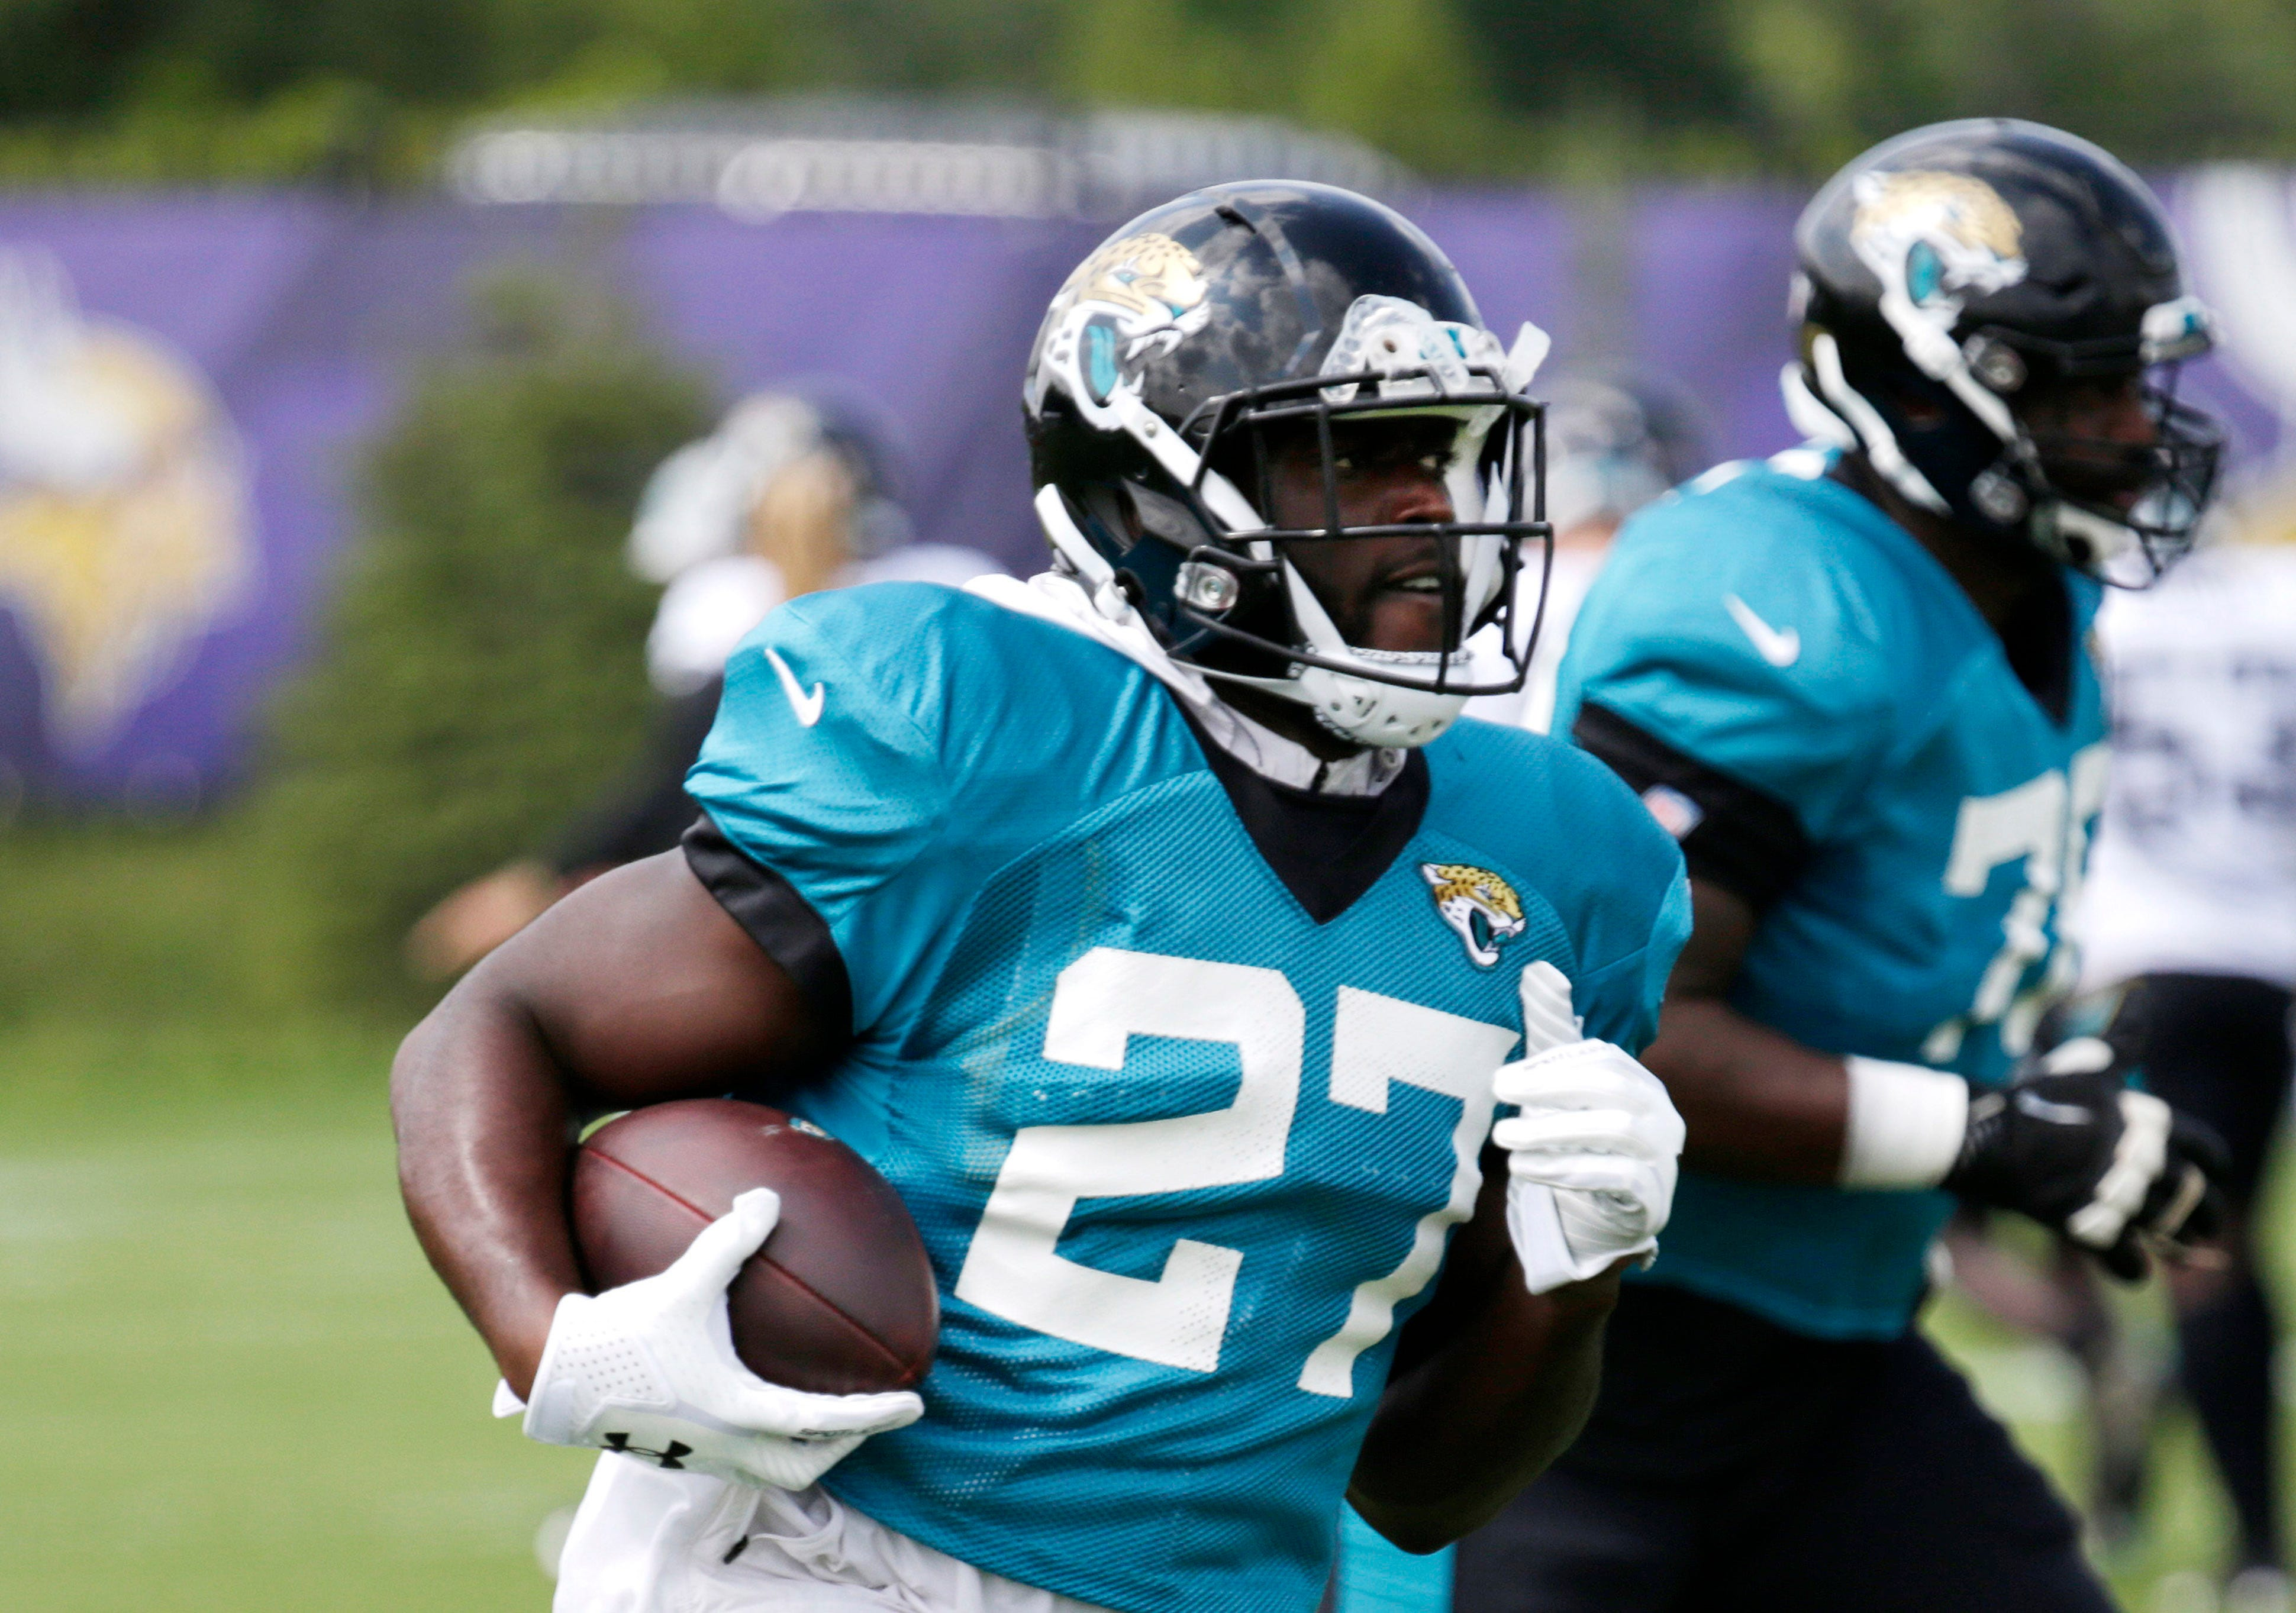 Why Leonard Fournette has $100 sealed in his pads